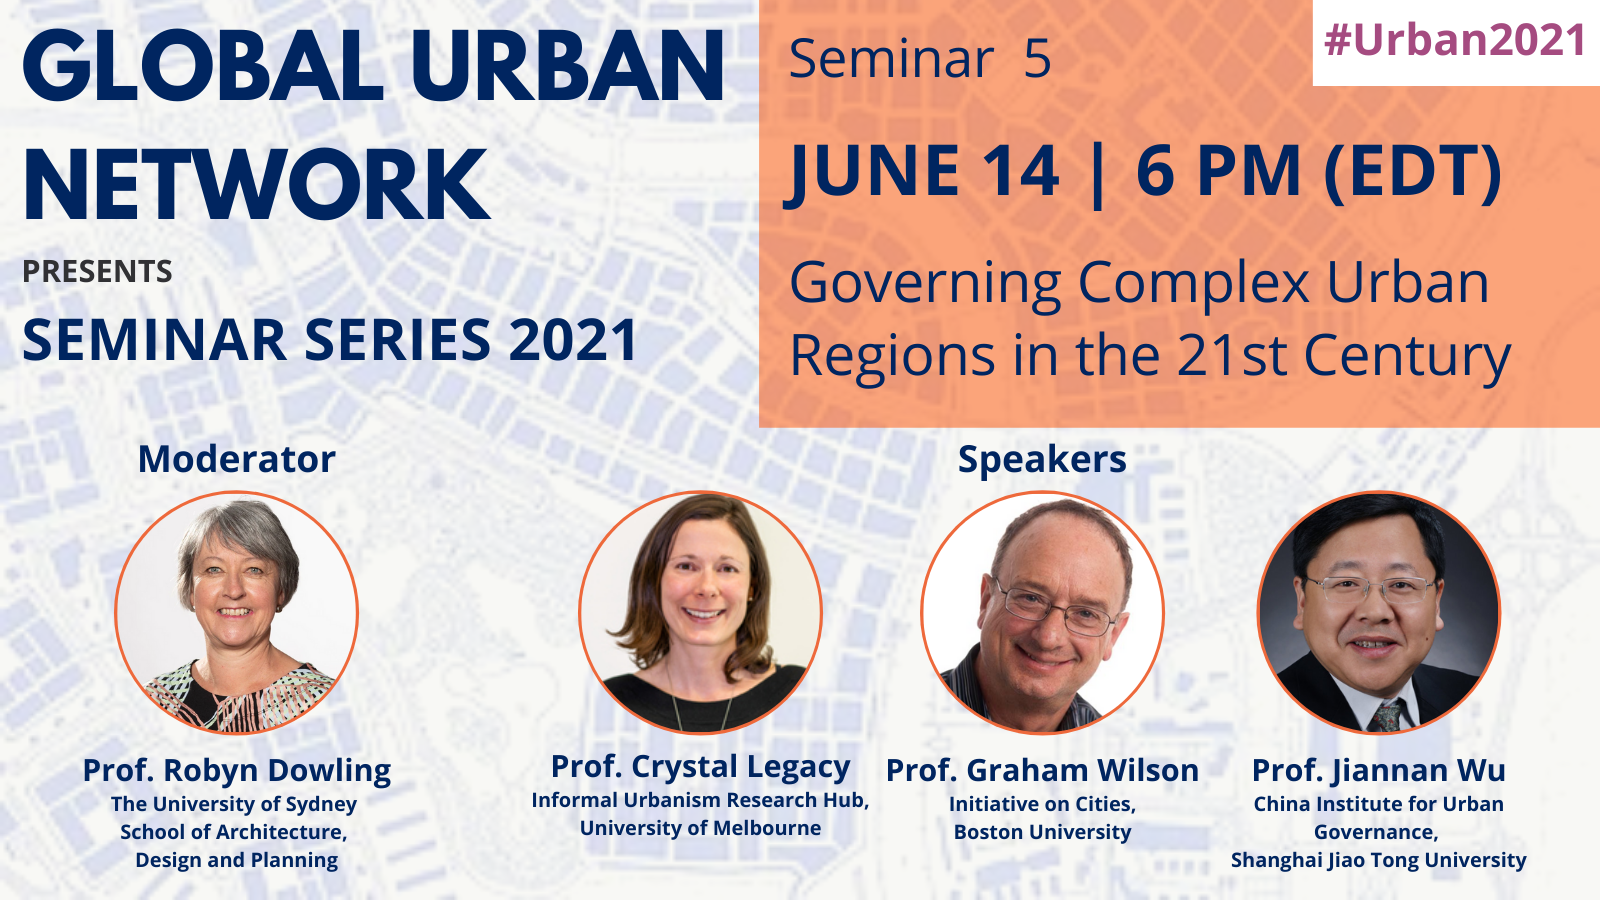 Postcard for Session 5 of global urban netwrok seminar series, to be held at 6 PM in Canada time.